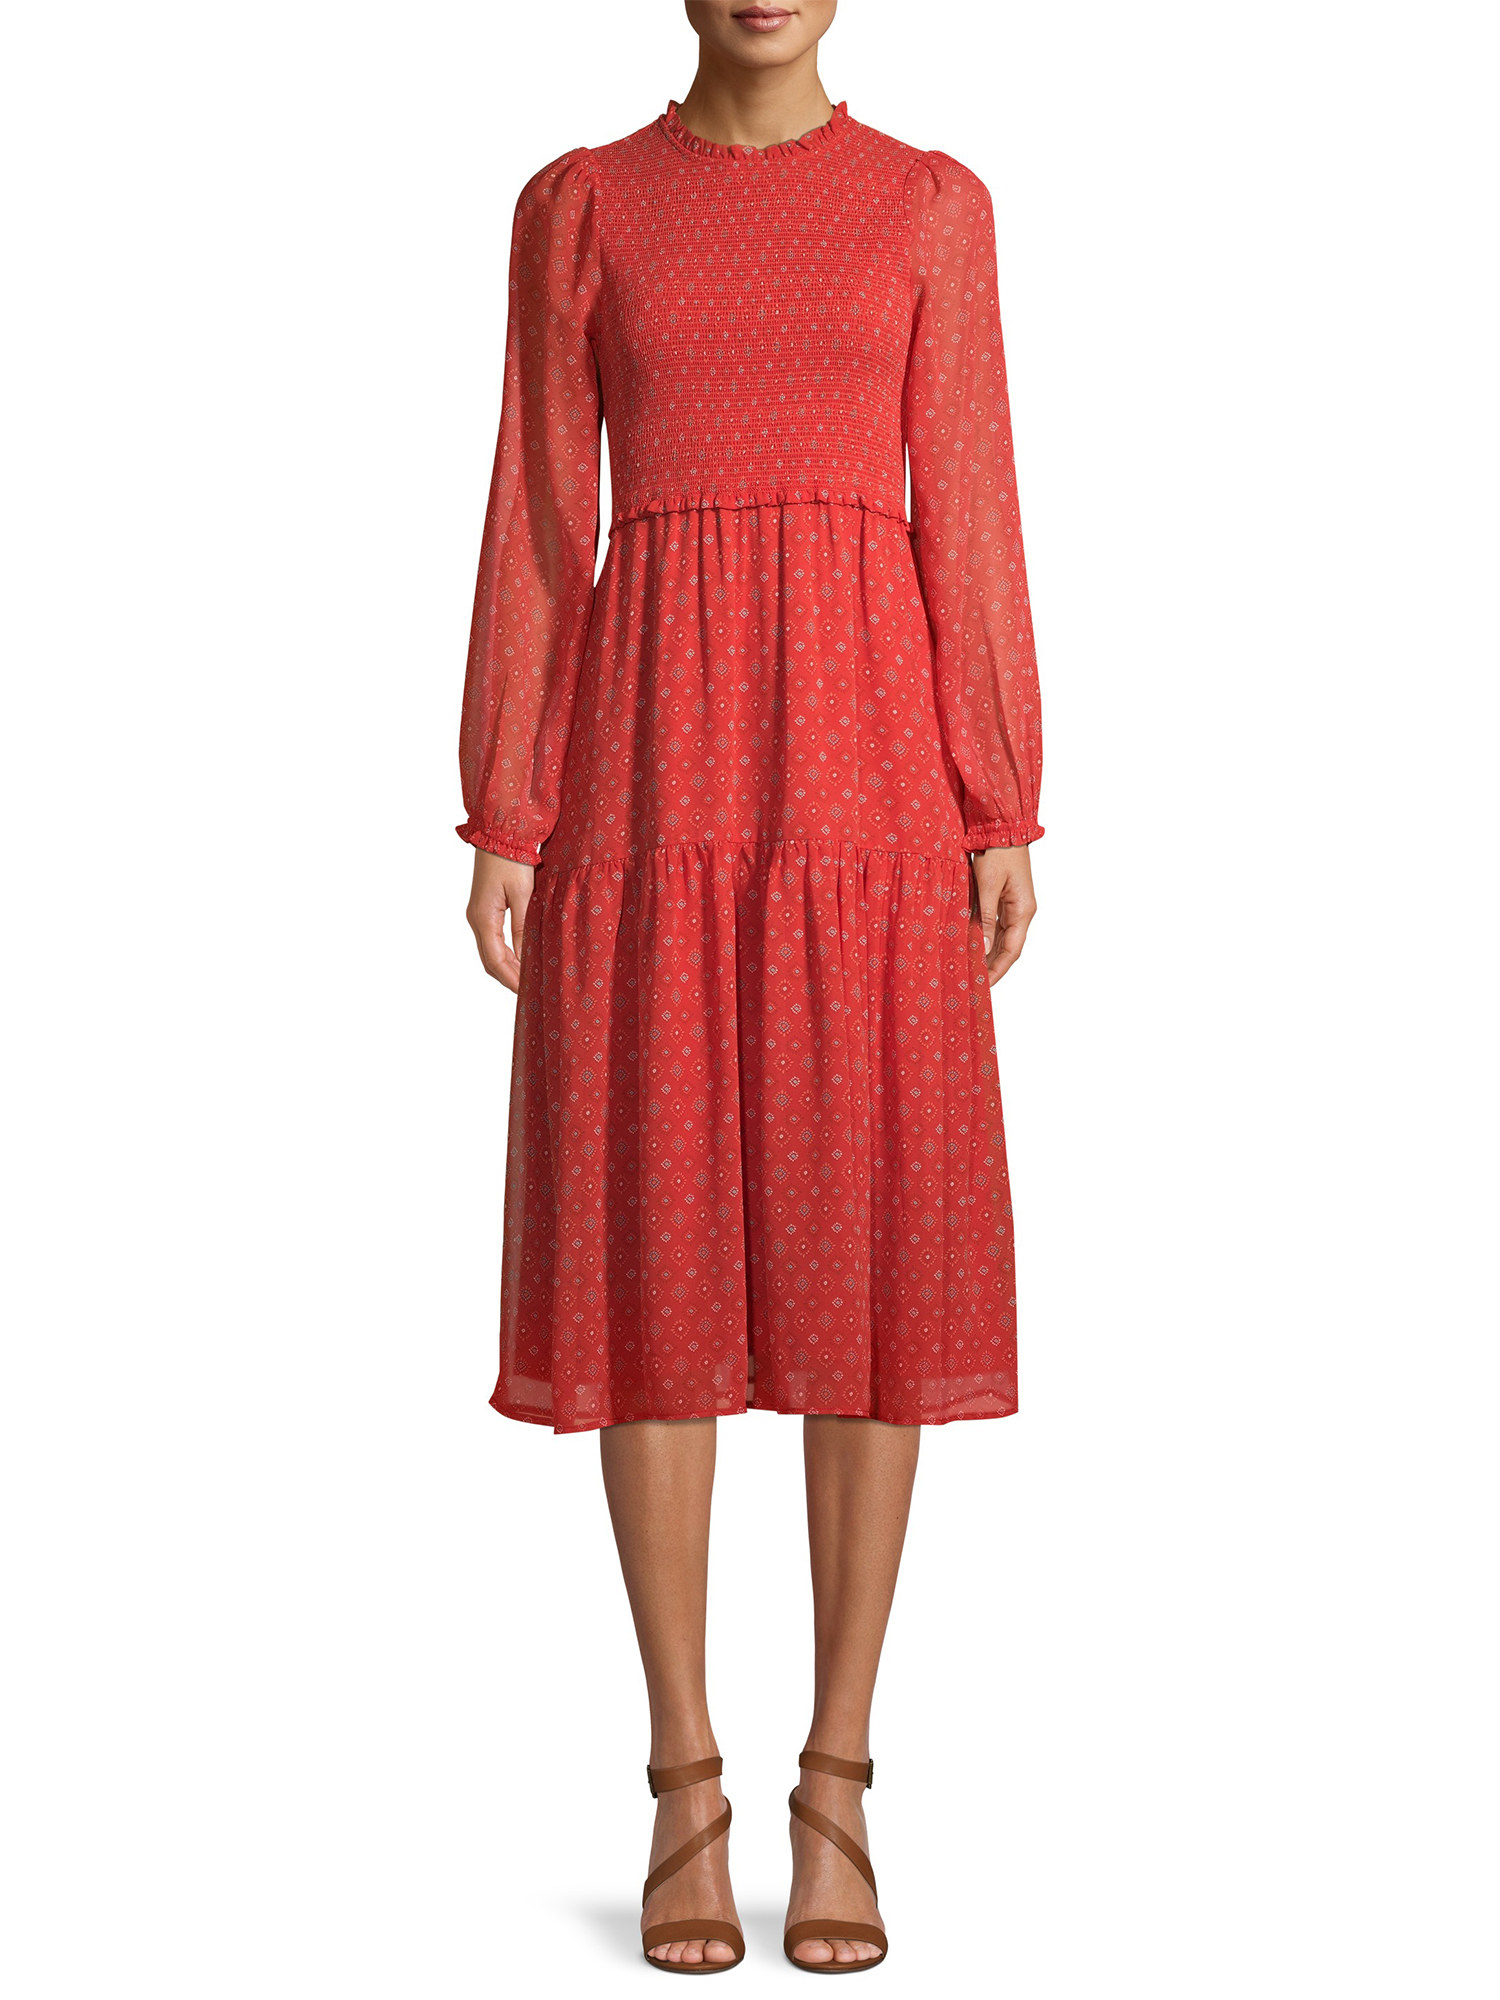 the dress in red with a slight white pattern on it